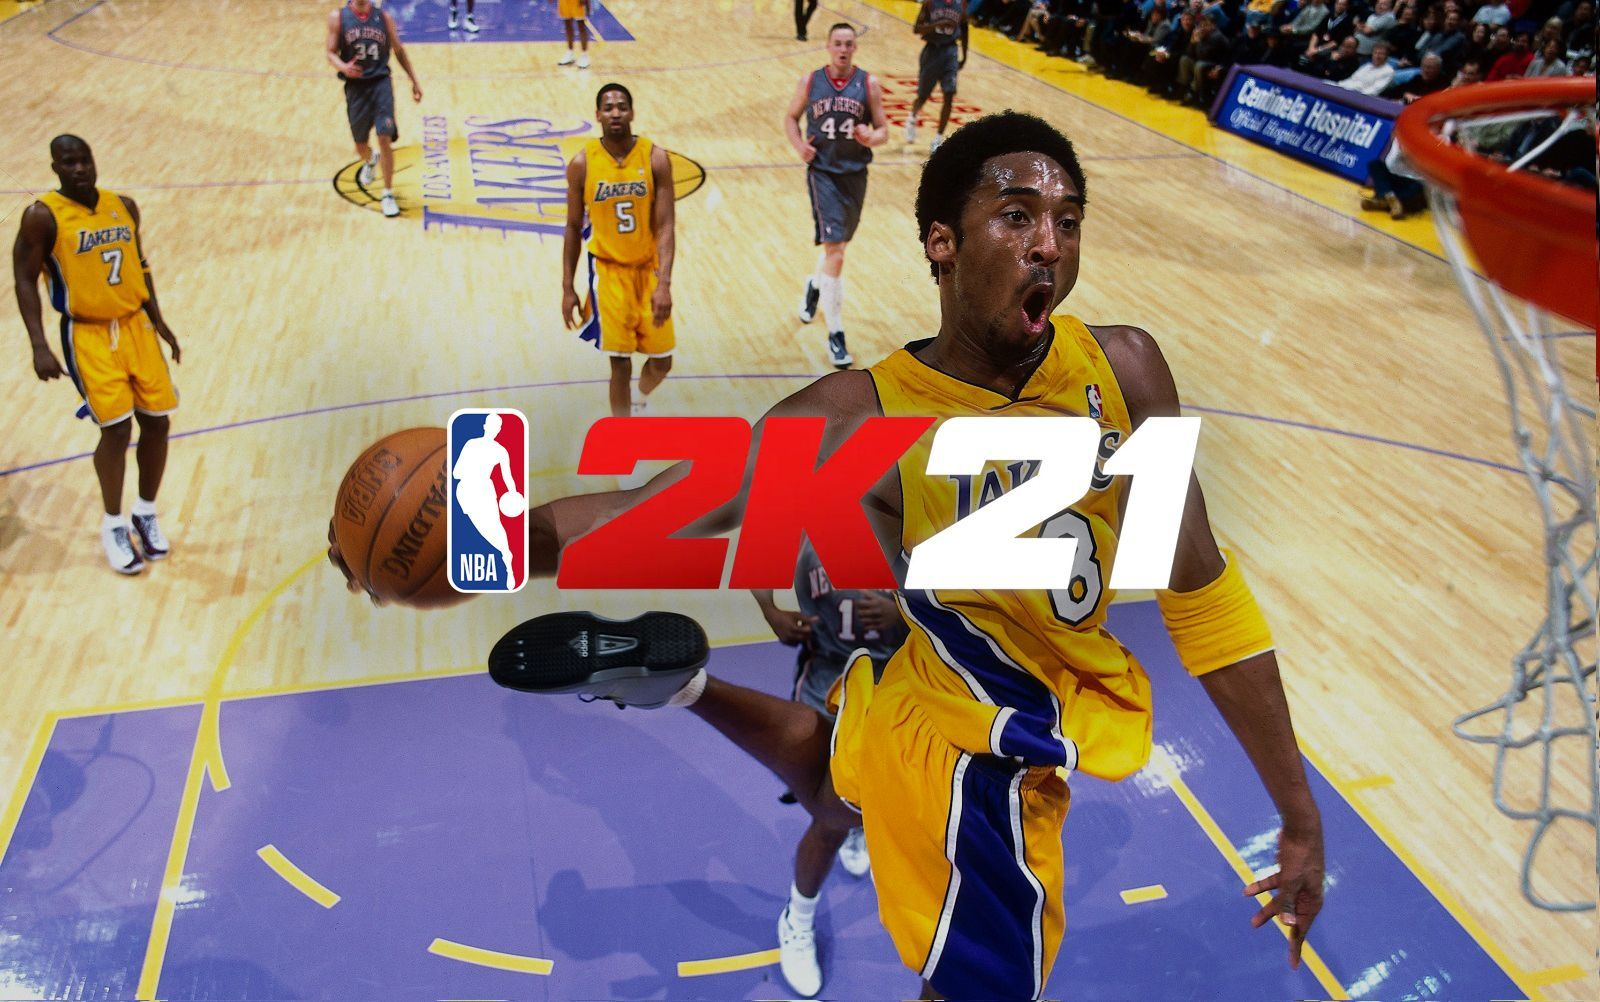 Kobe Bryant Damian Lillard And Zion Williamson Are The Cover Athletes Of Nba 2k21